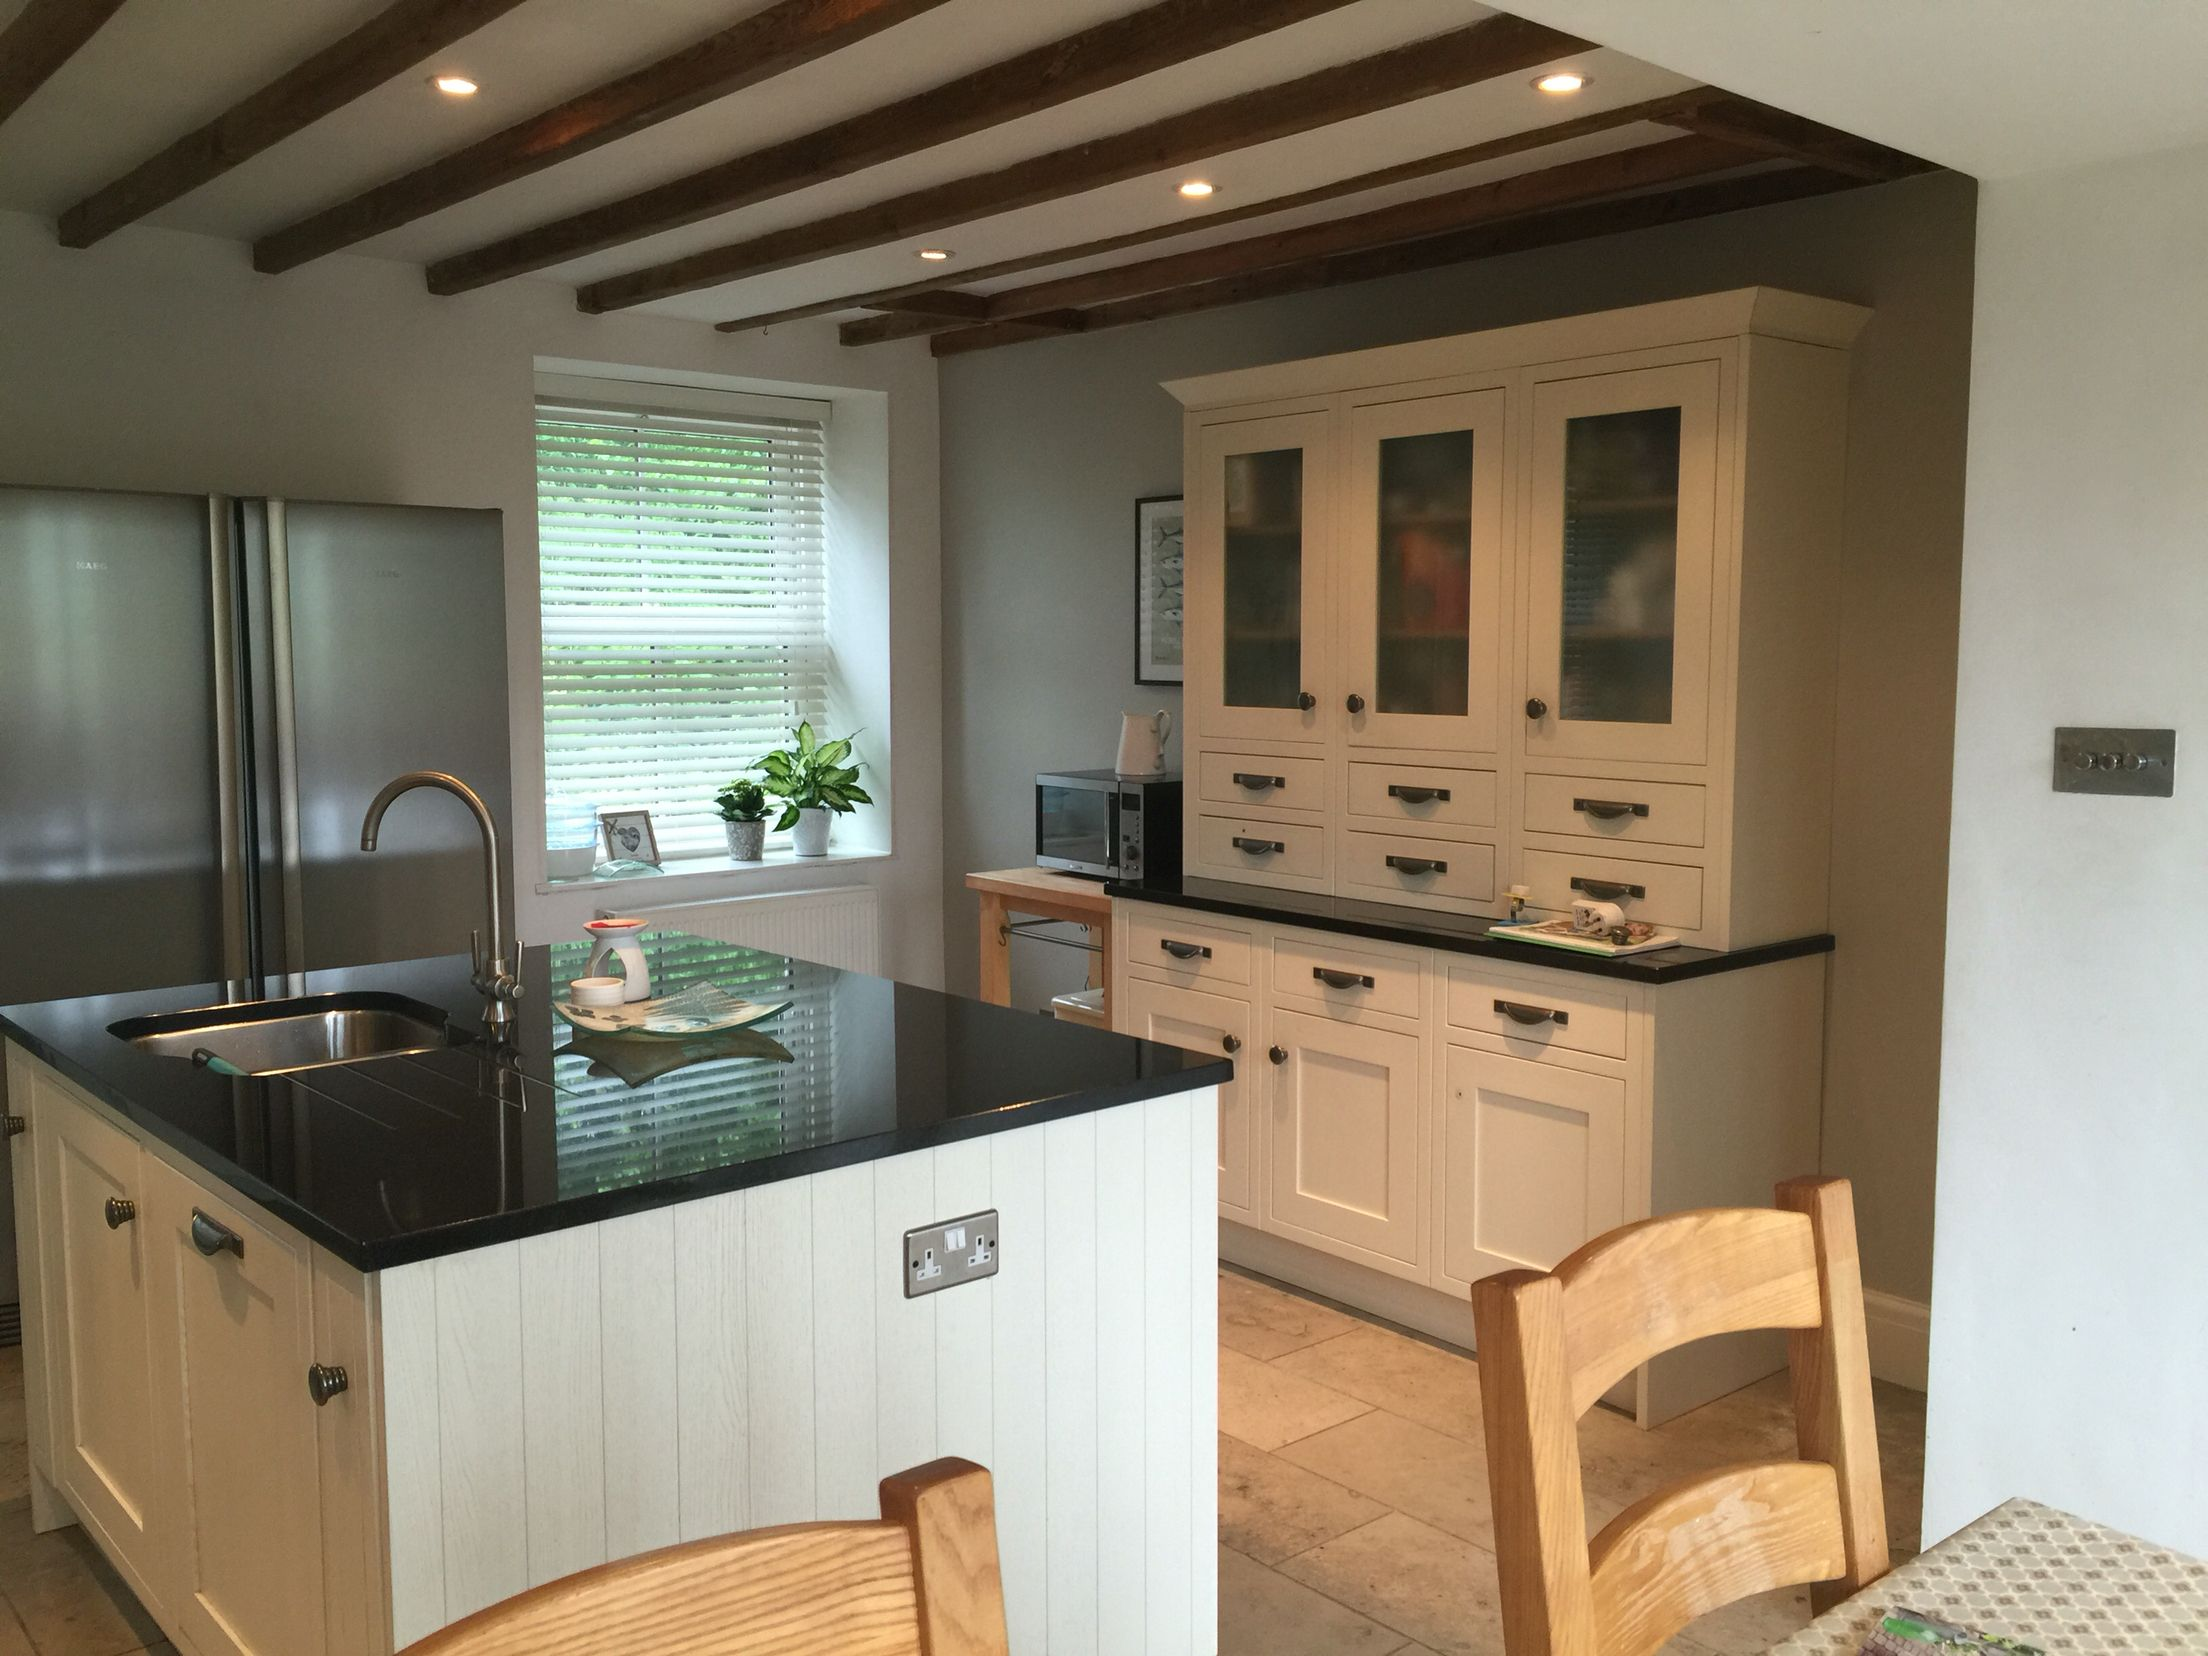 Best Kitchen Walls Painted With Farrow Ball Cornforth White 640 x 480